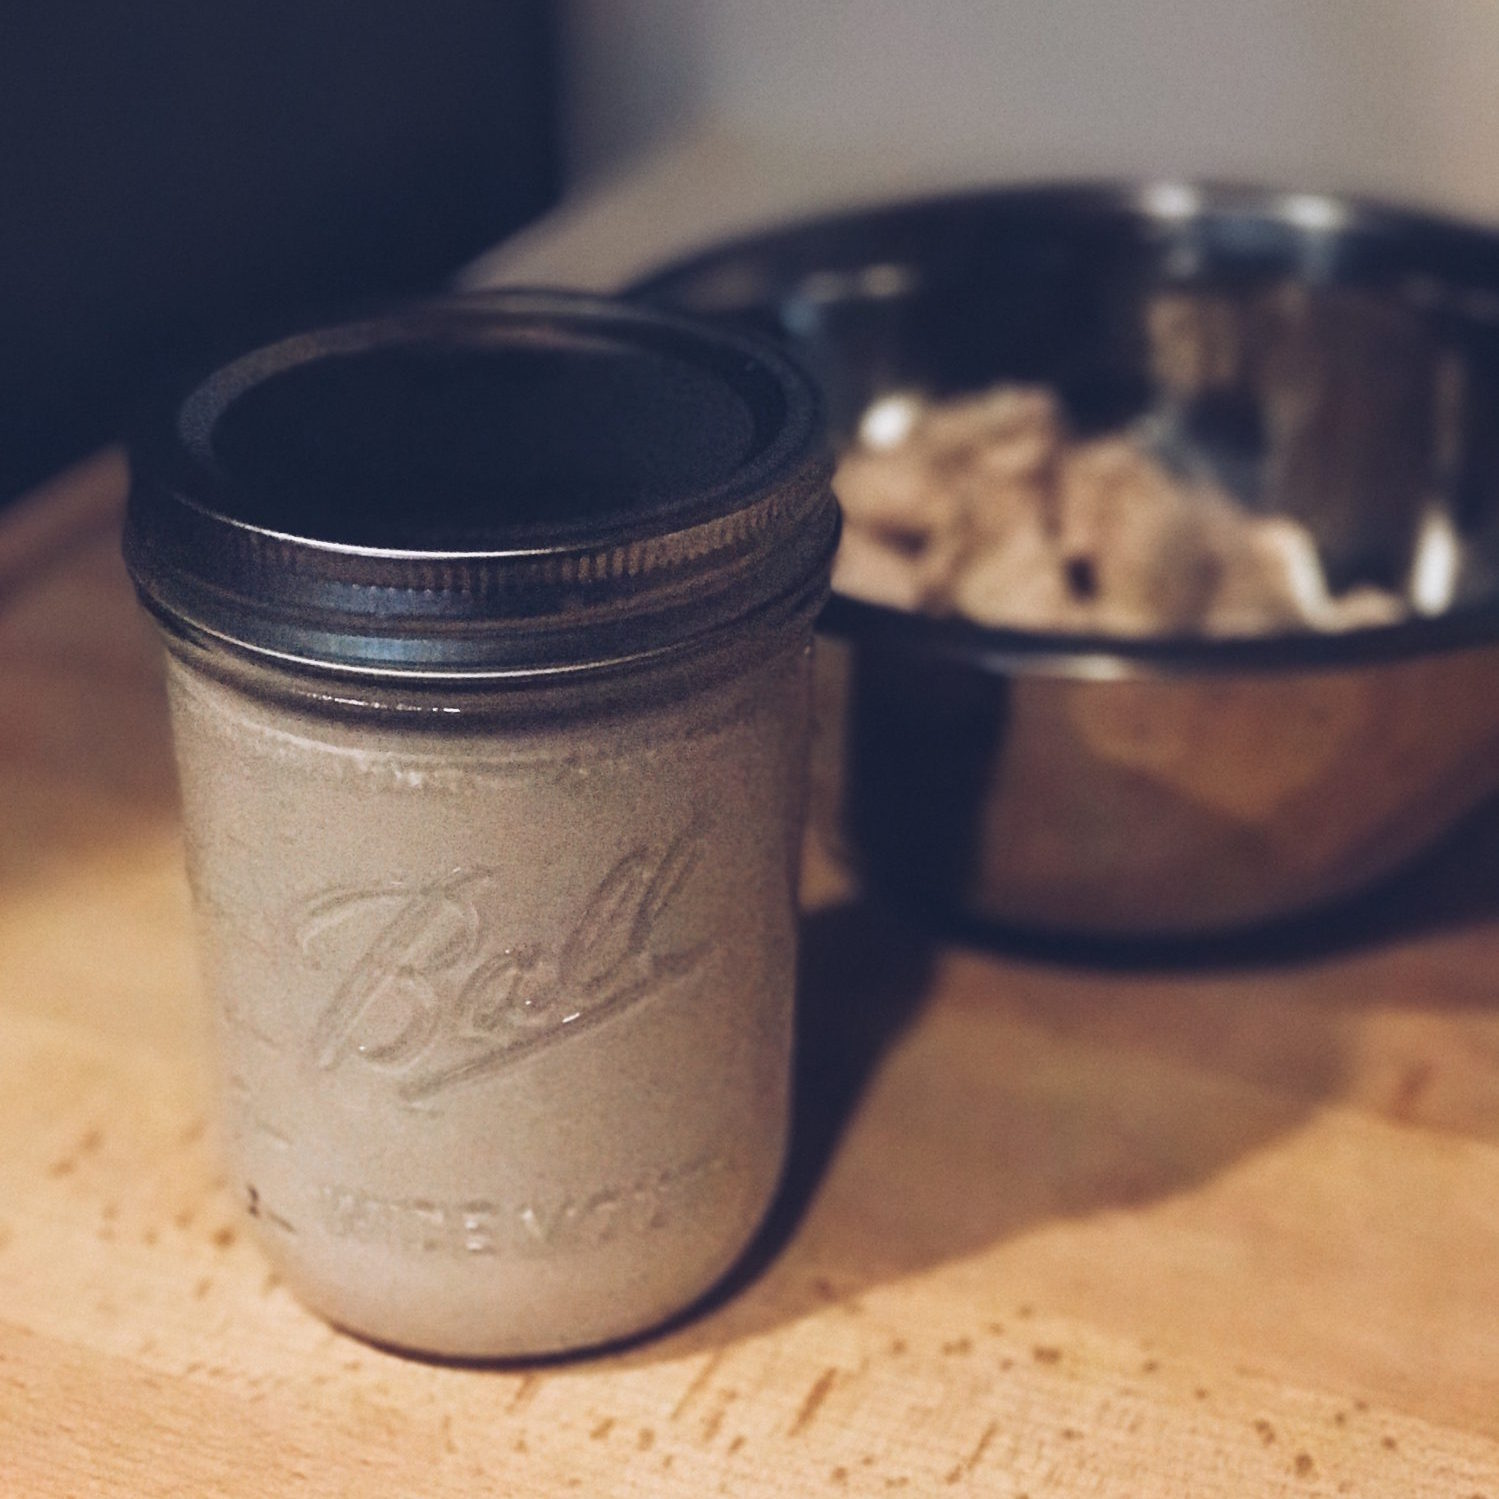 Steph Keay homemade almond milk recipe